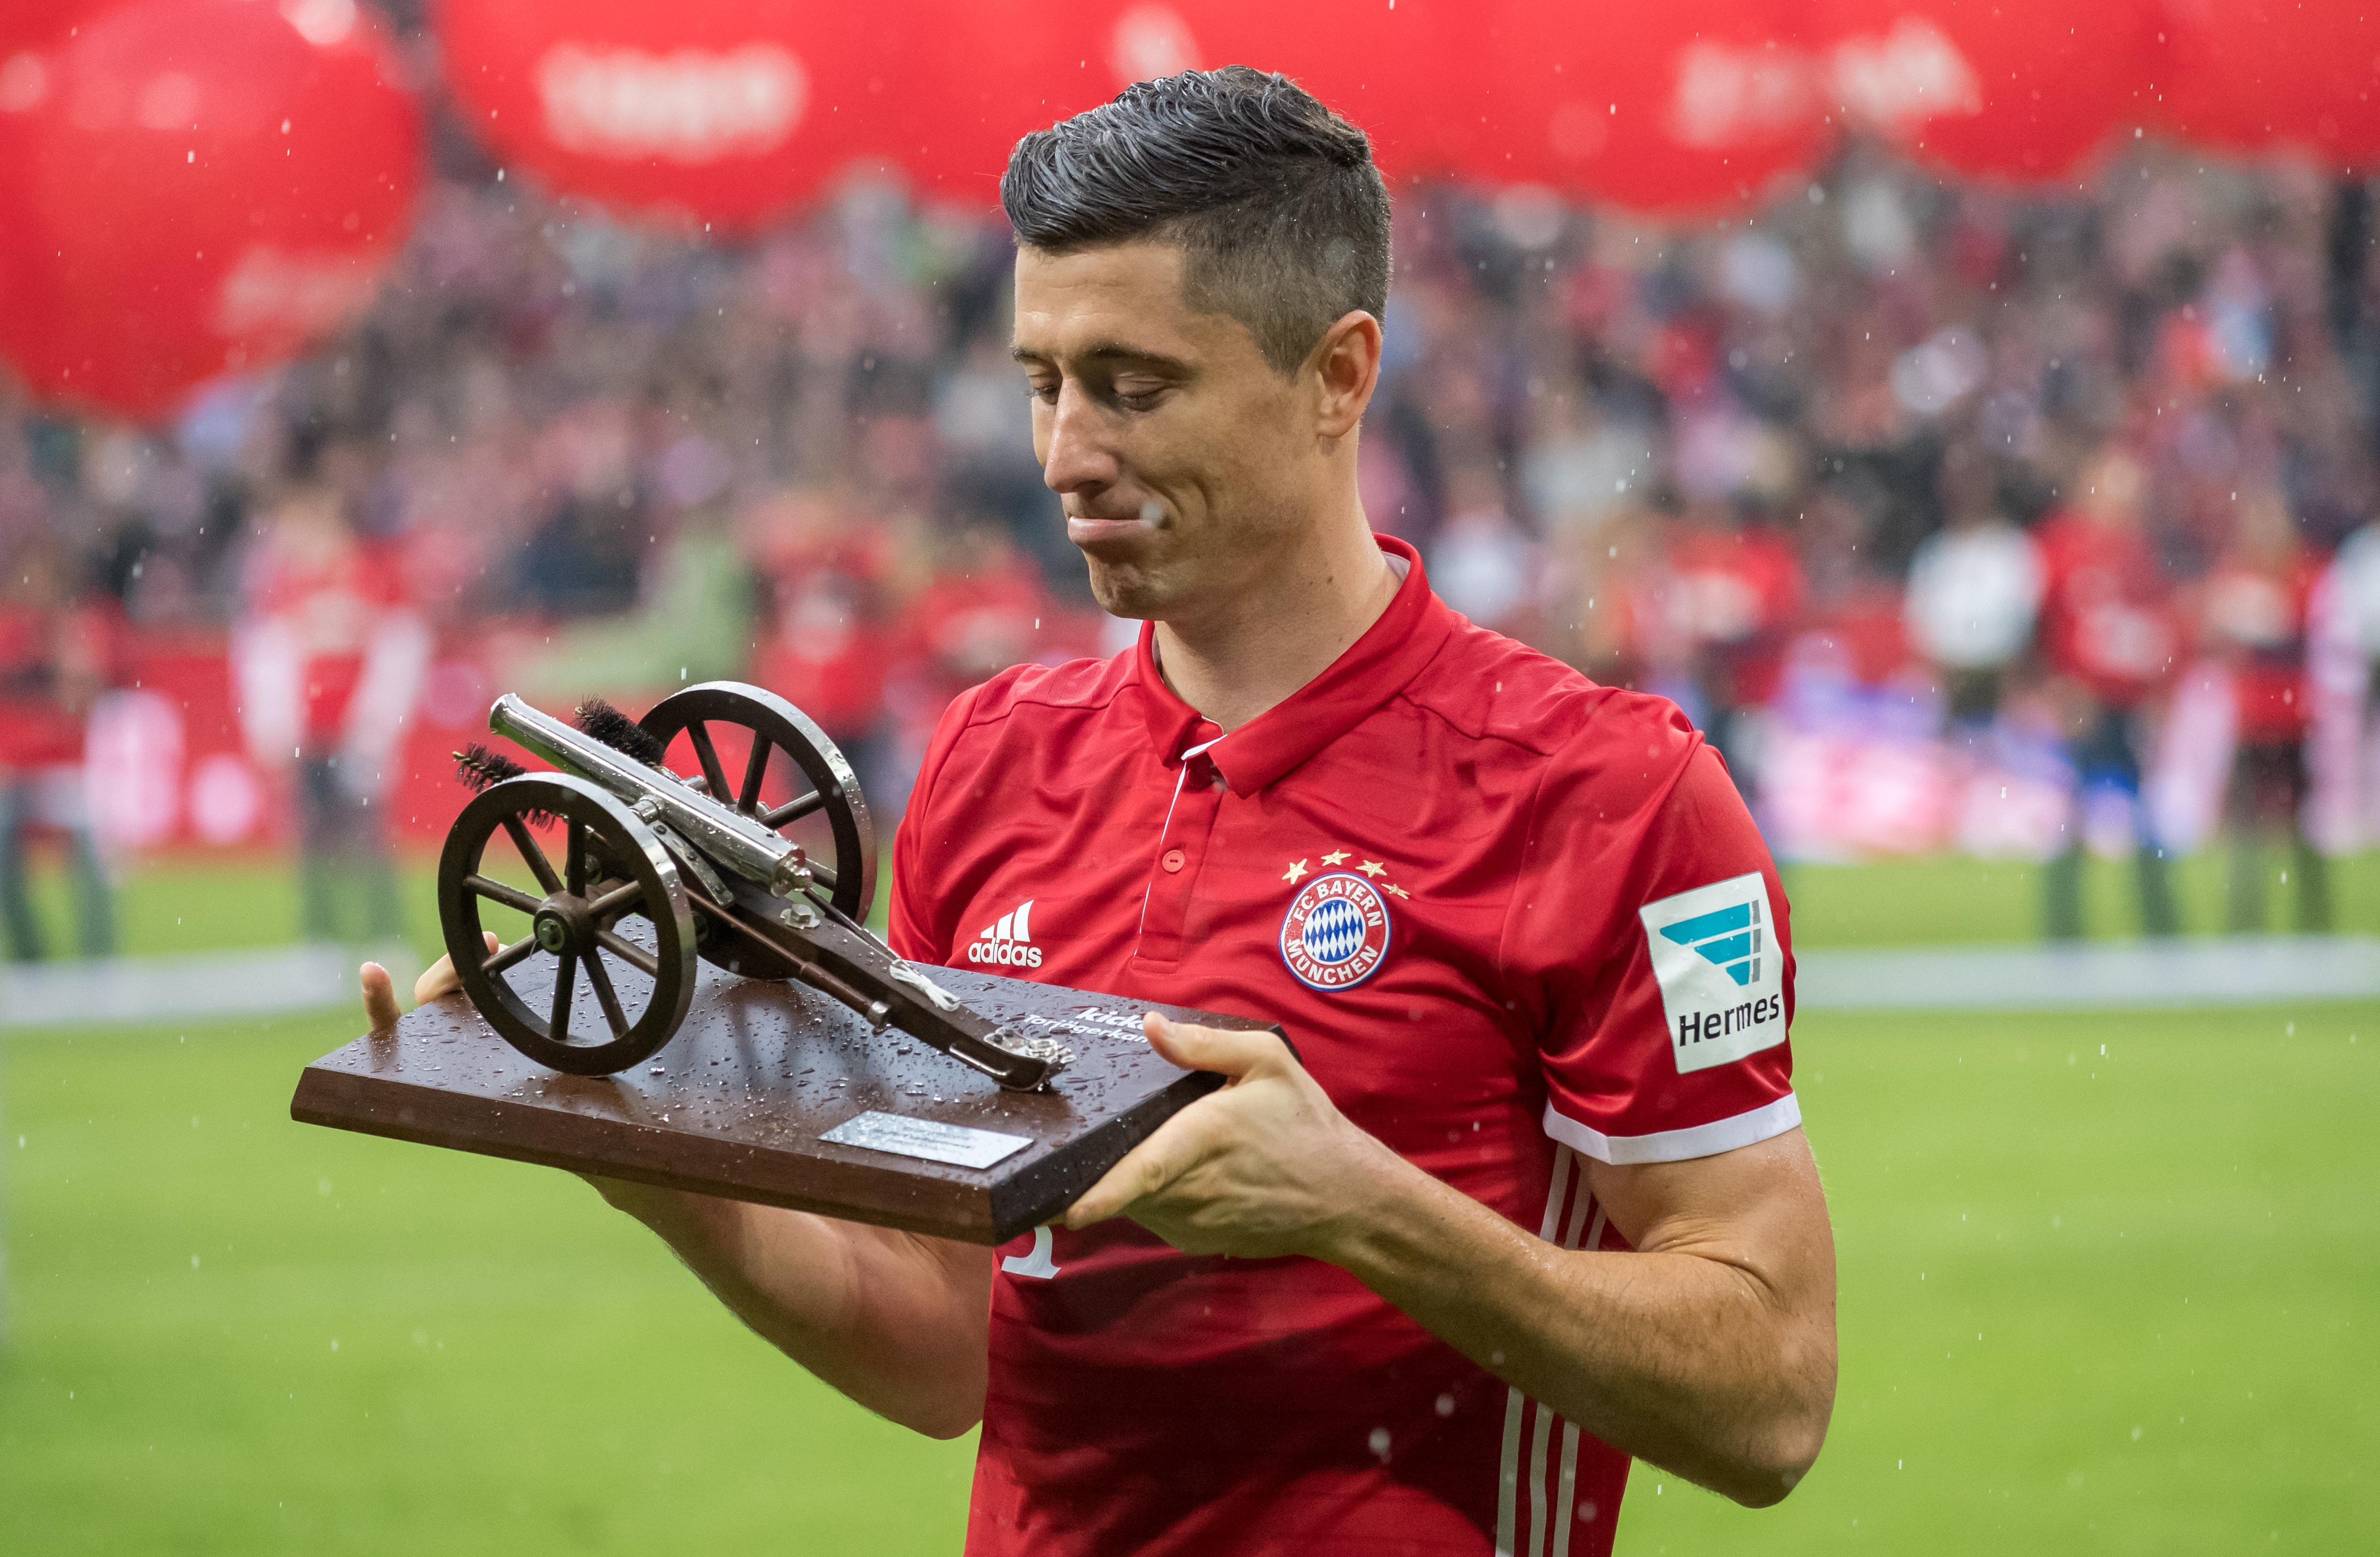 In Germany, instead of a Golden Boot you get a CANNON!